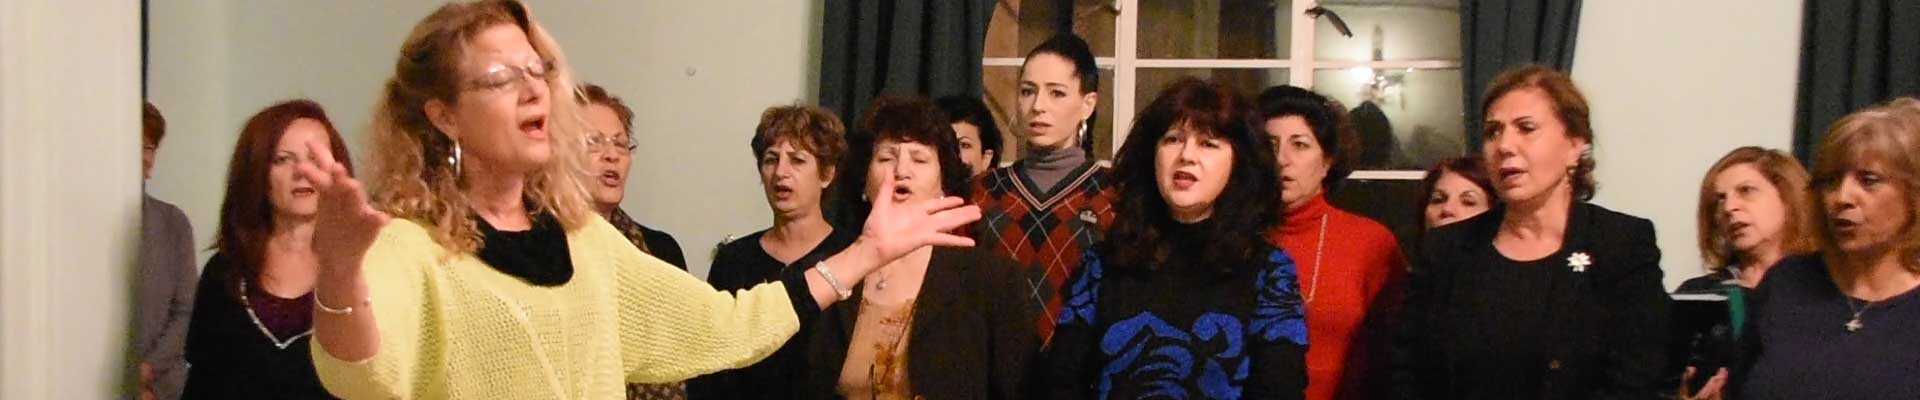 Rehearsal for the  Bicommunial Choir for Peace in Cyprus.